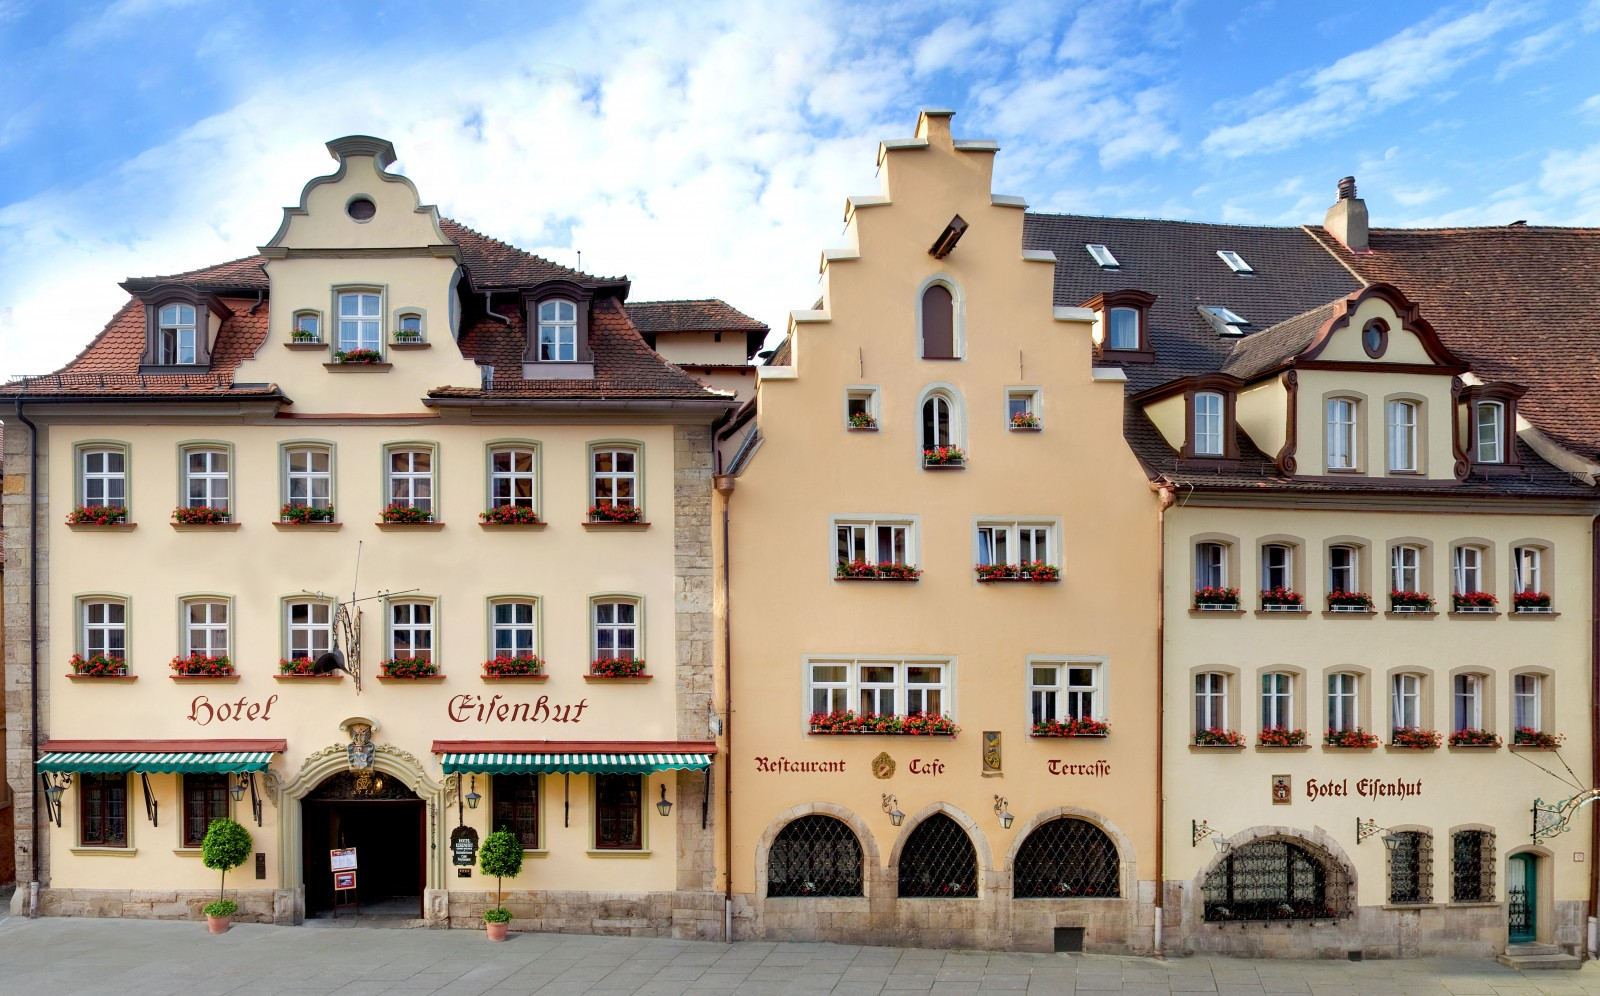 Hotel Eisenhut  fits perfectly into the historic architecture of Rothenburg.